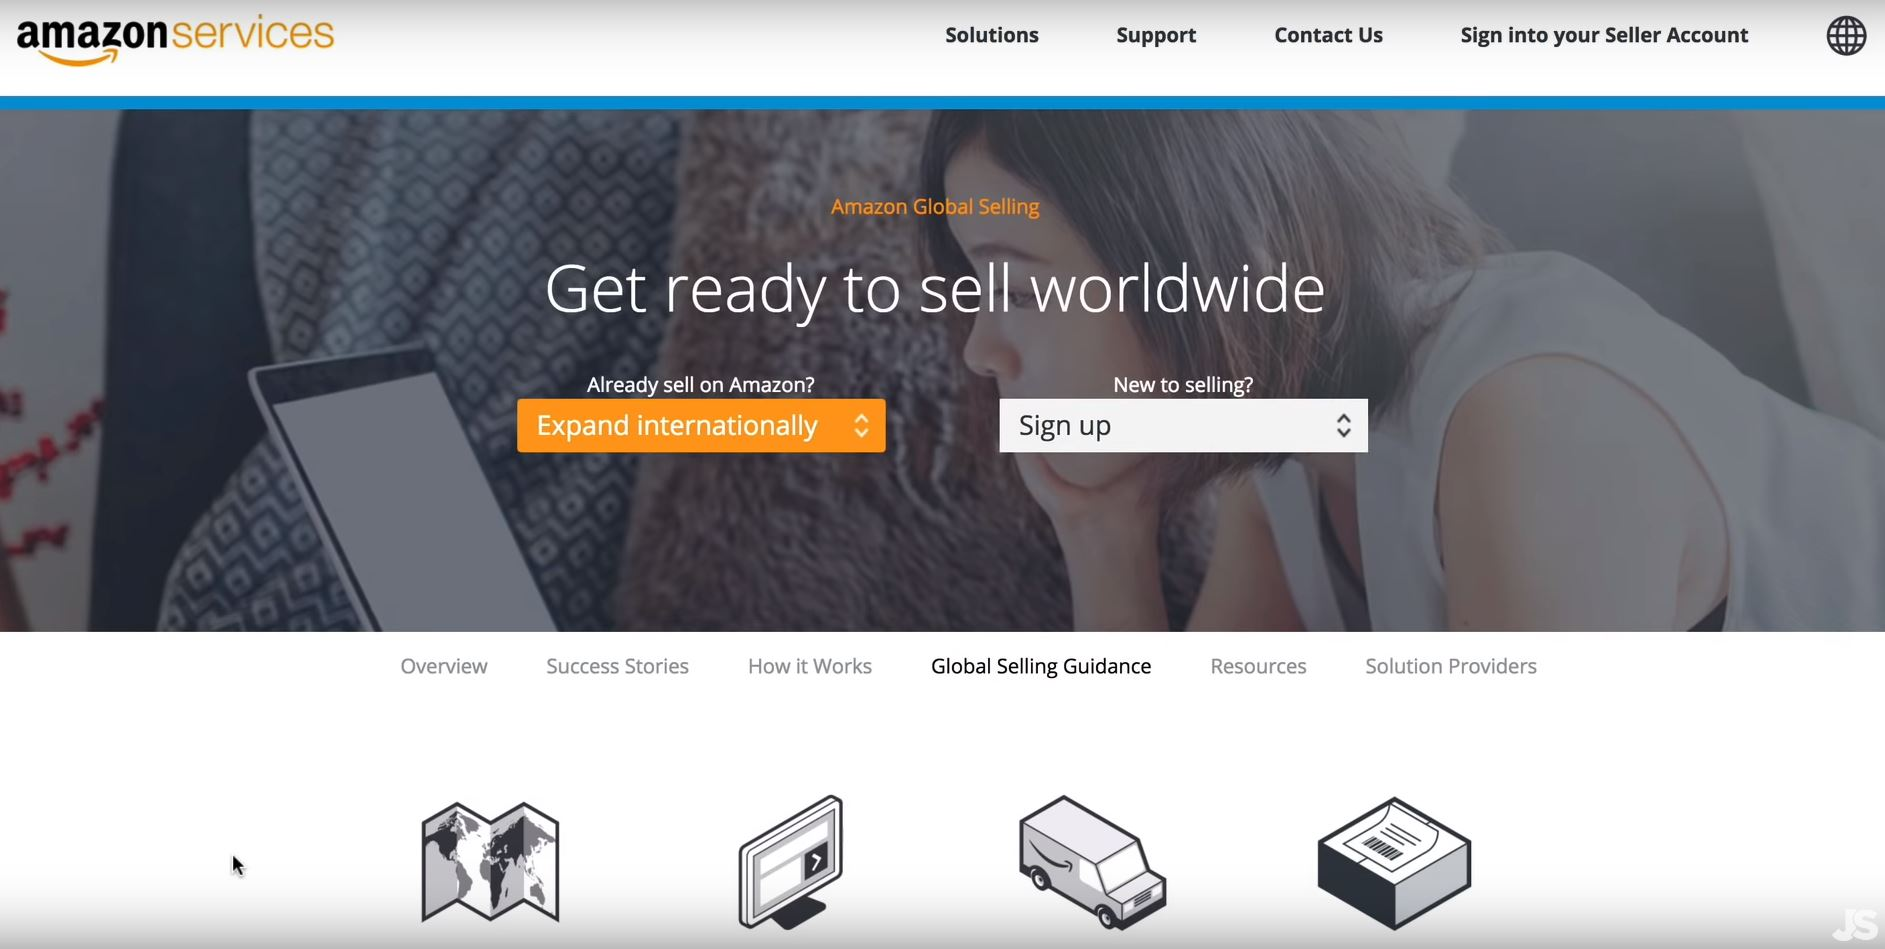 How To Sell On Amazon.com If You Live Outside The USA